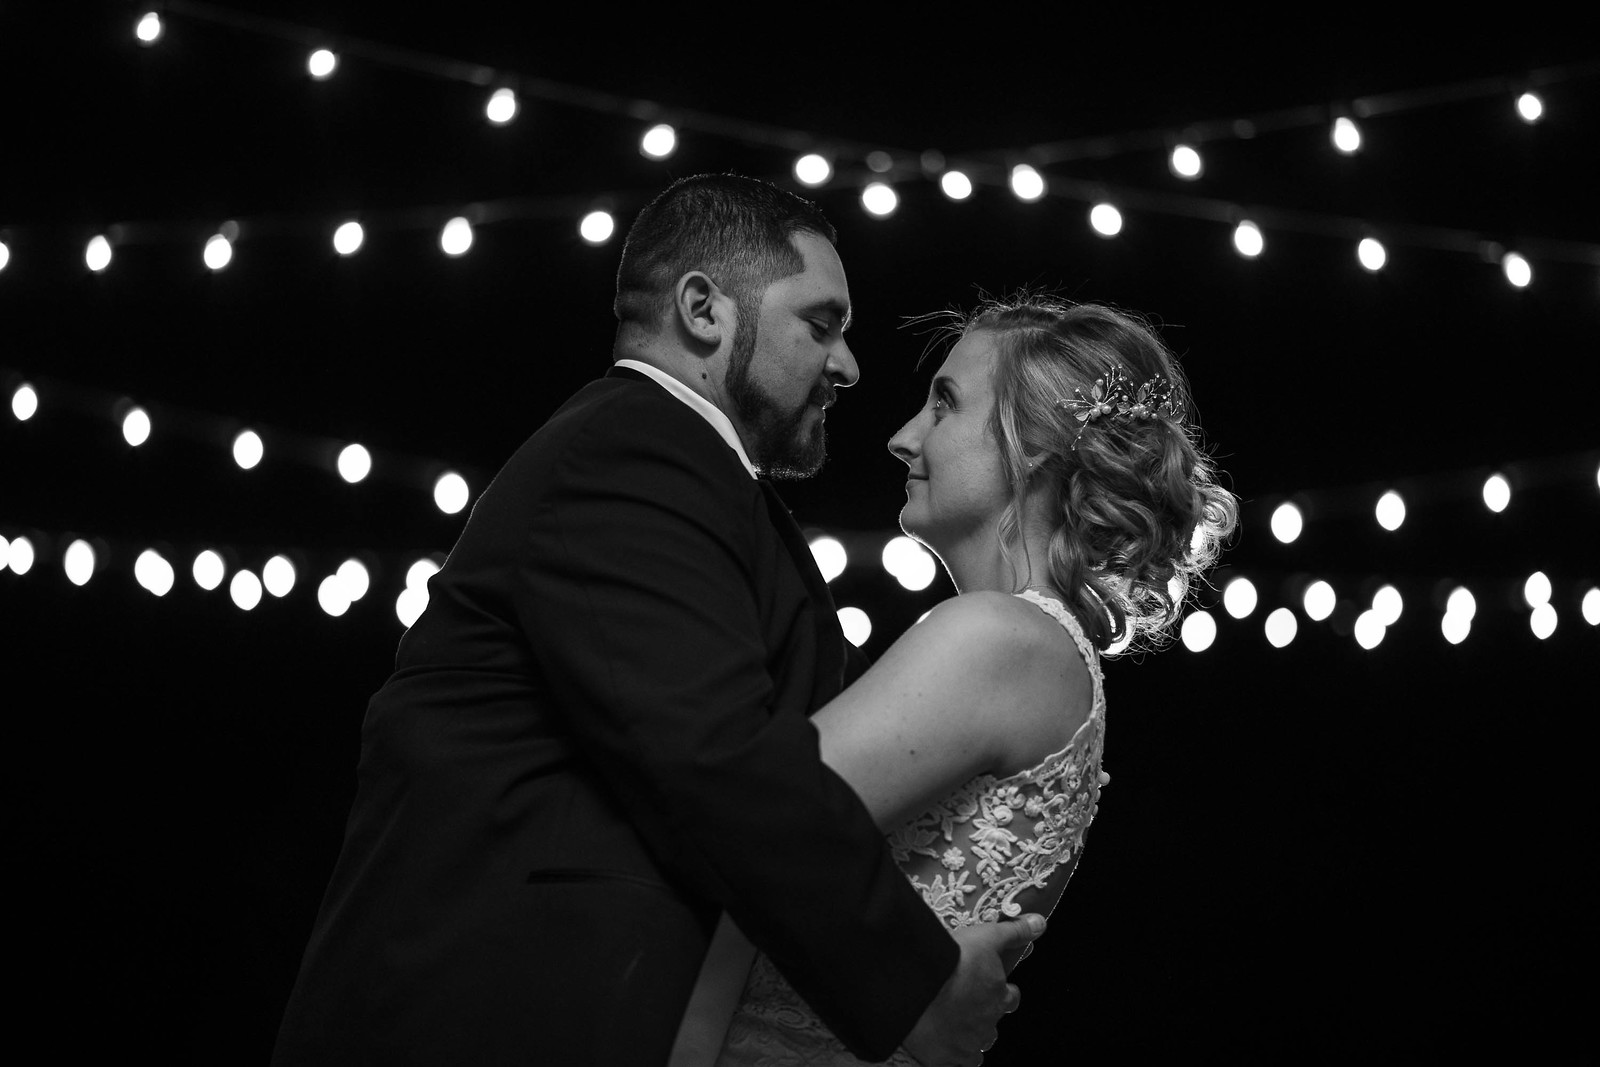 Meagan + Burt at Grand Geneva (May 17, 2019)